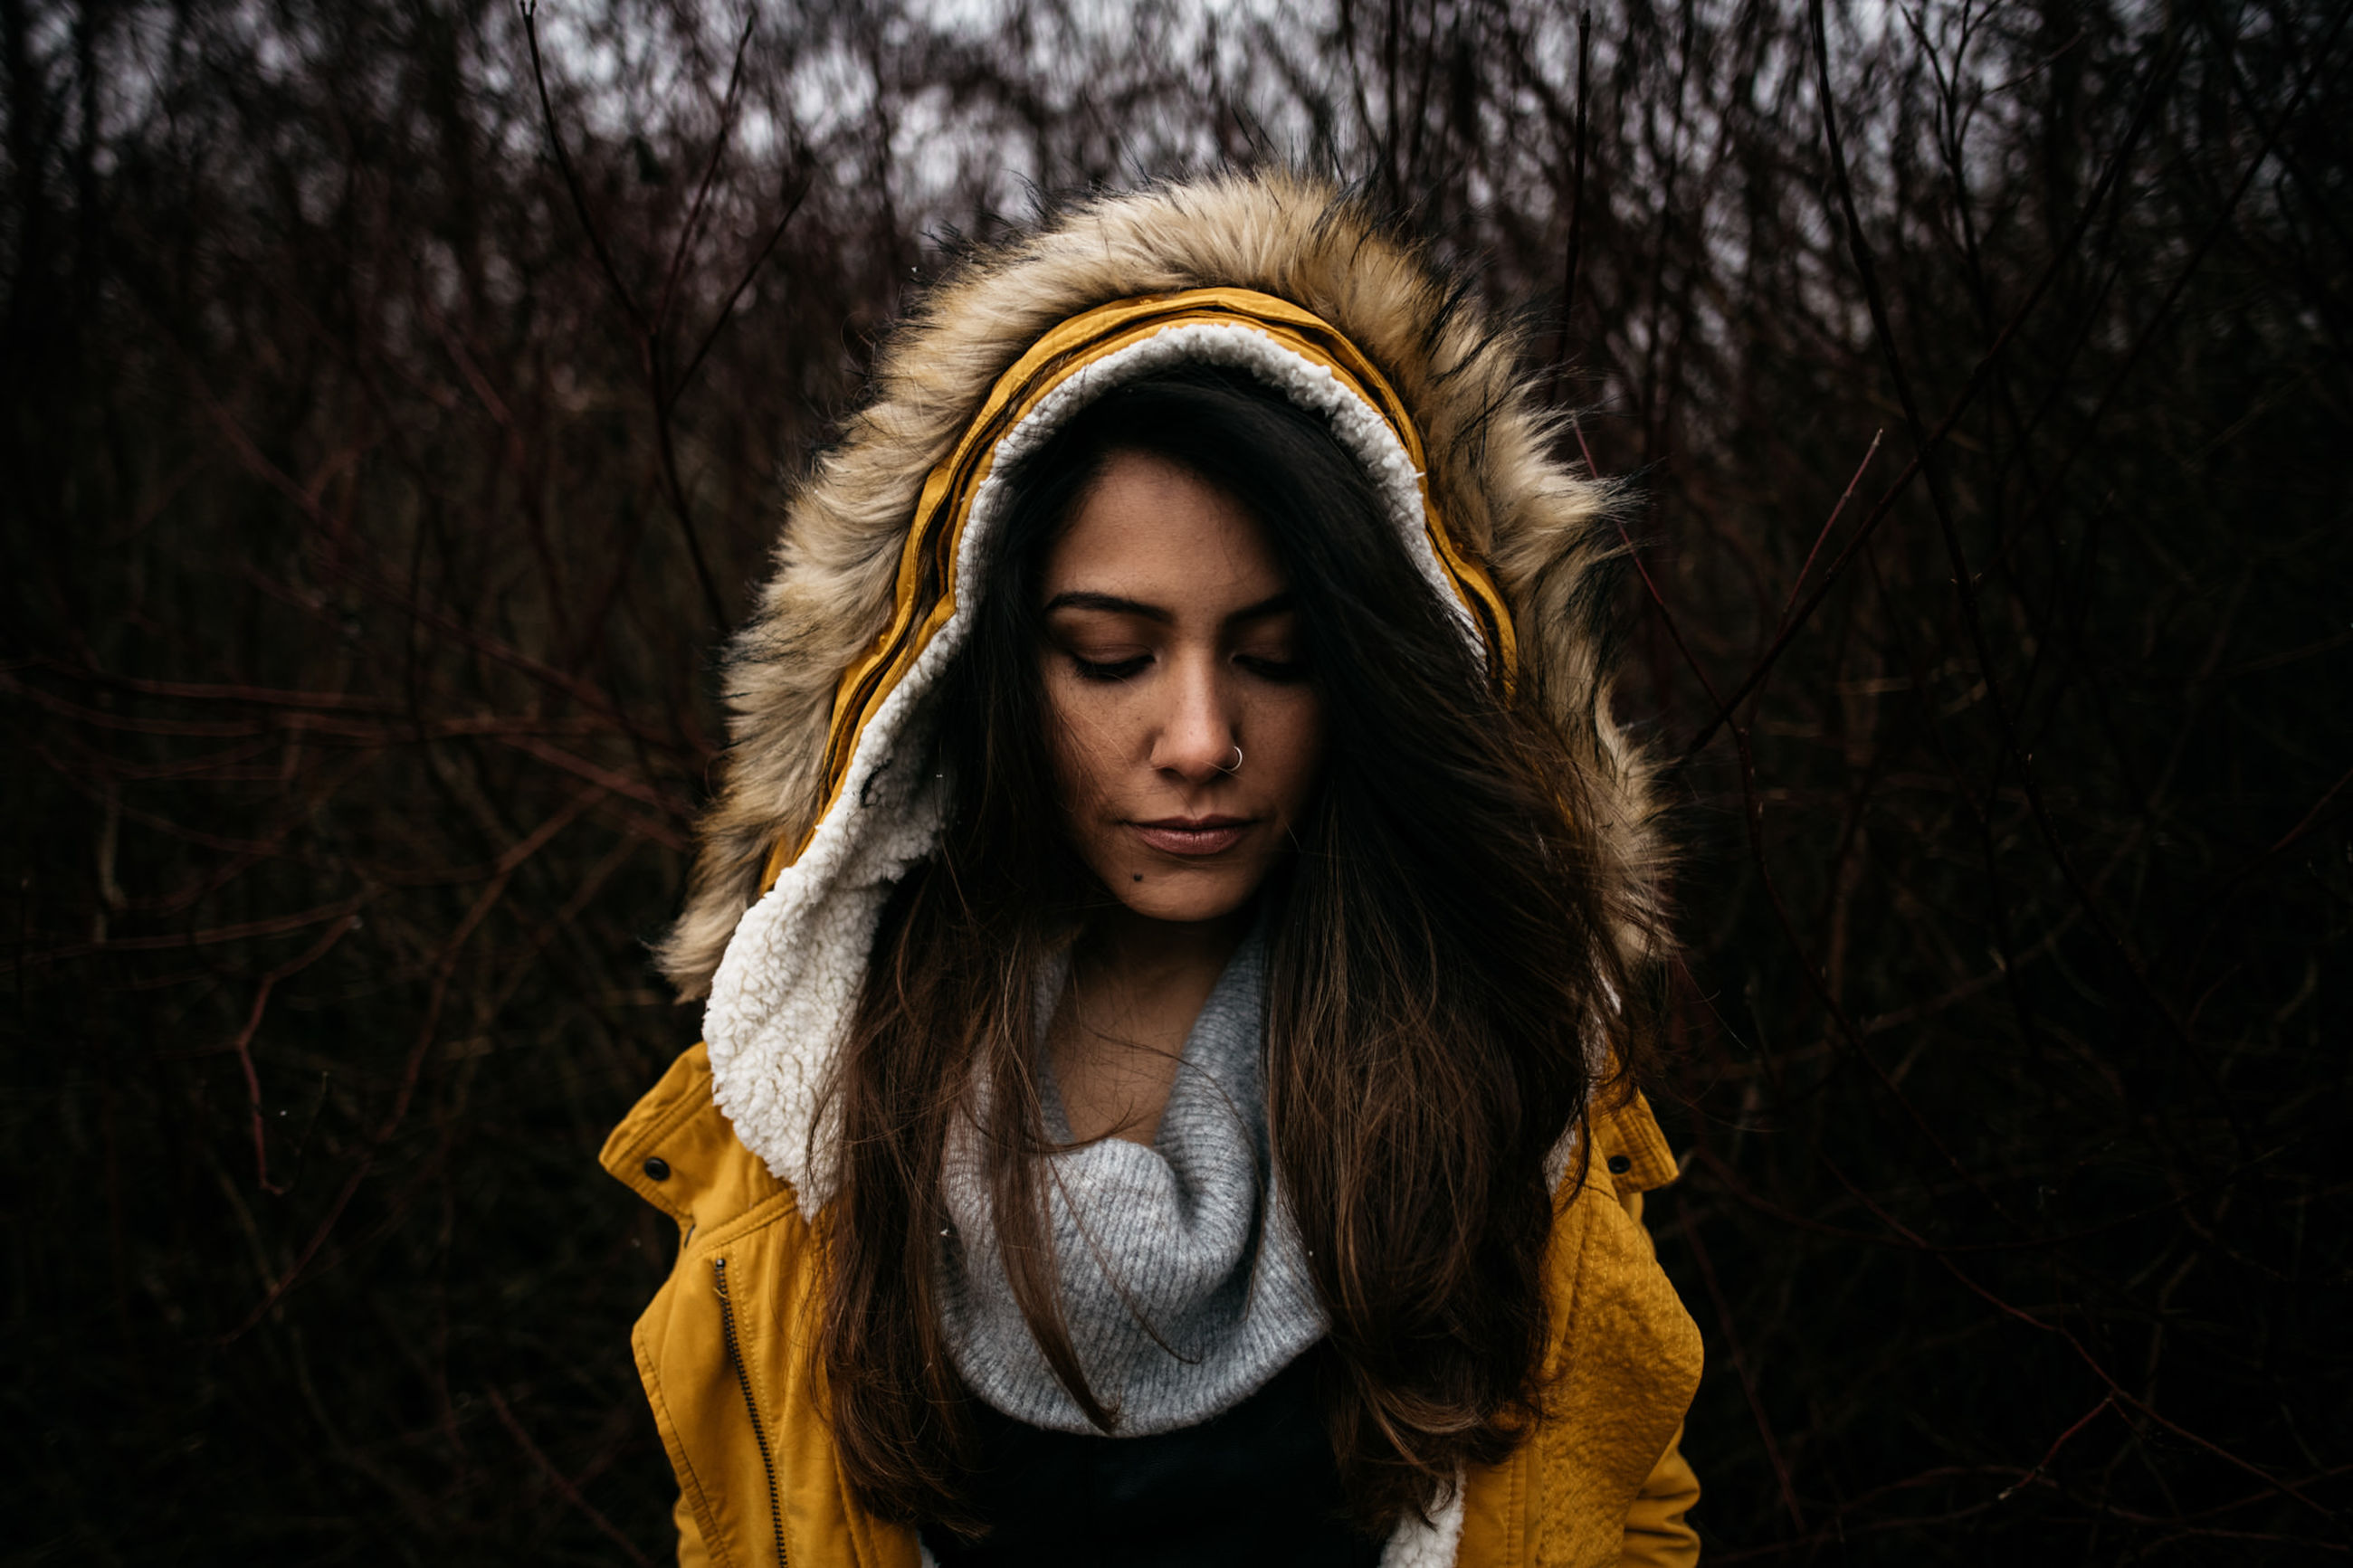 front view, one person, clothing, real people, young women, lifestyles, portrait, young adult, tree, warm clothing, winter, jacket, headshot, standing, leisure activity, hair, fur, looking down, contemplation, hood - clothing, outdoors, hairstyle, scarf, beautiful woman